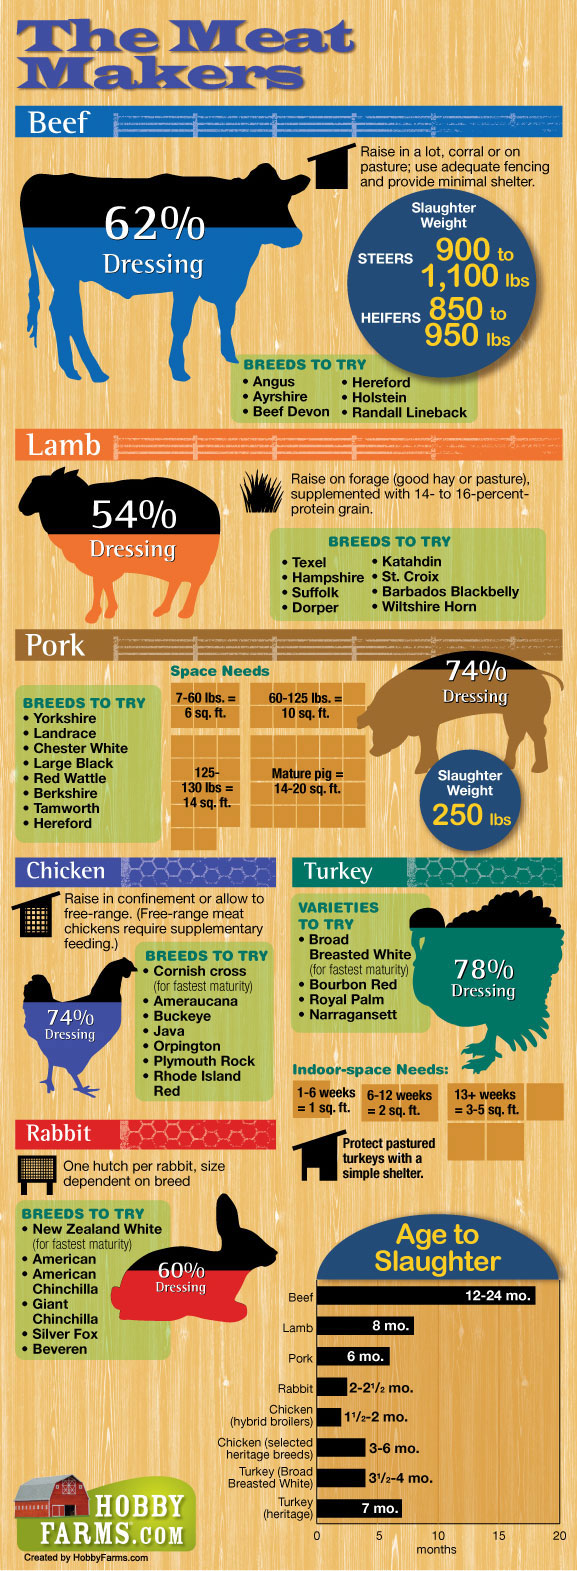 infographic-meat-makers